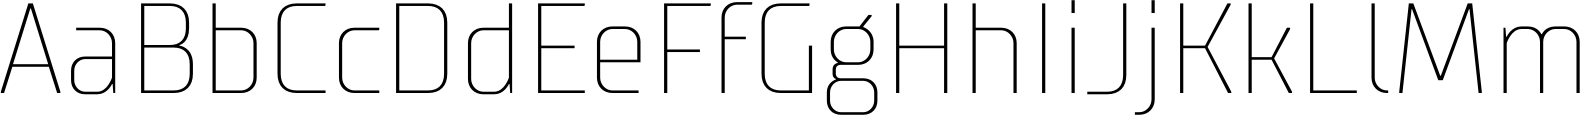 TT Supermolot Condensed Thin Font